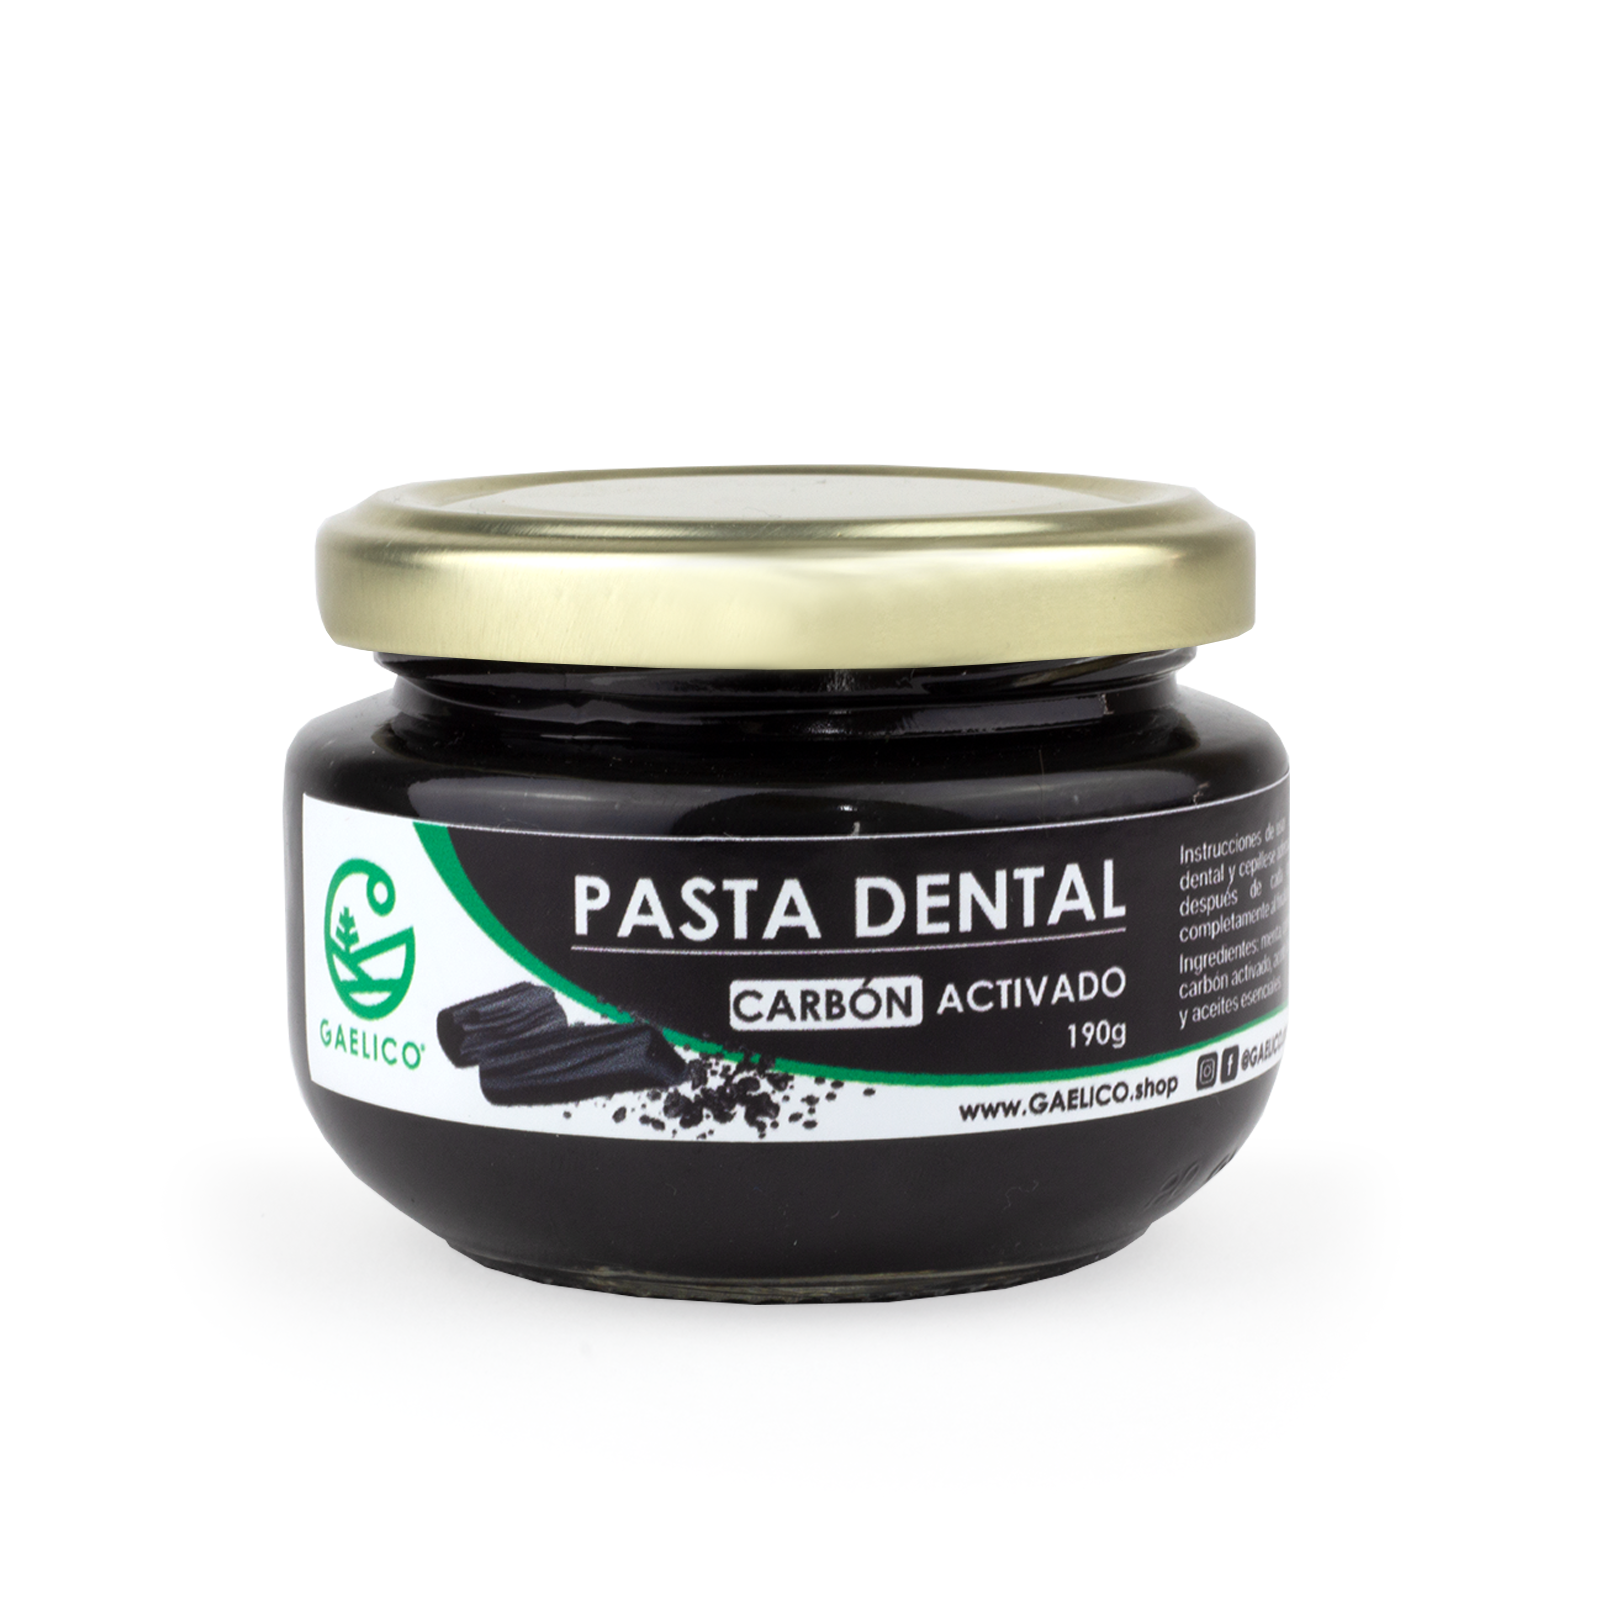 PASTA DENTAL DE CARBÓN ACTIVADO